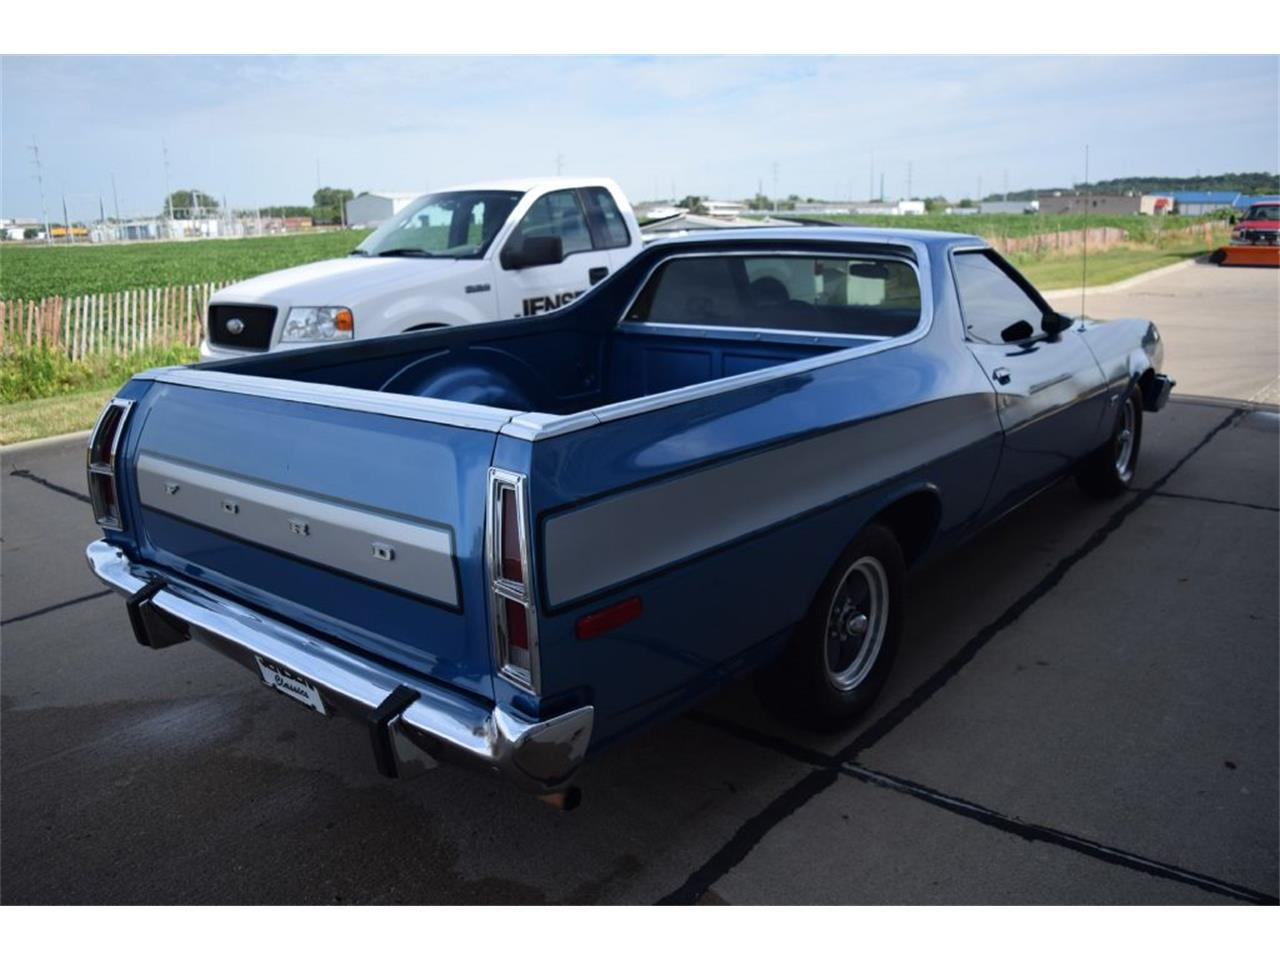 Large Picture of Classic 1973 Ford Ranchero located in Iowa - $17,650.00 - MDYE